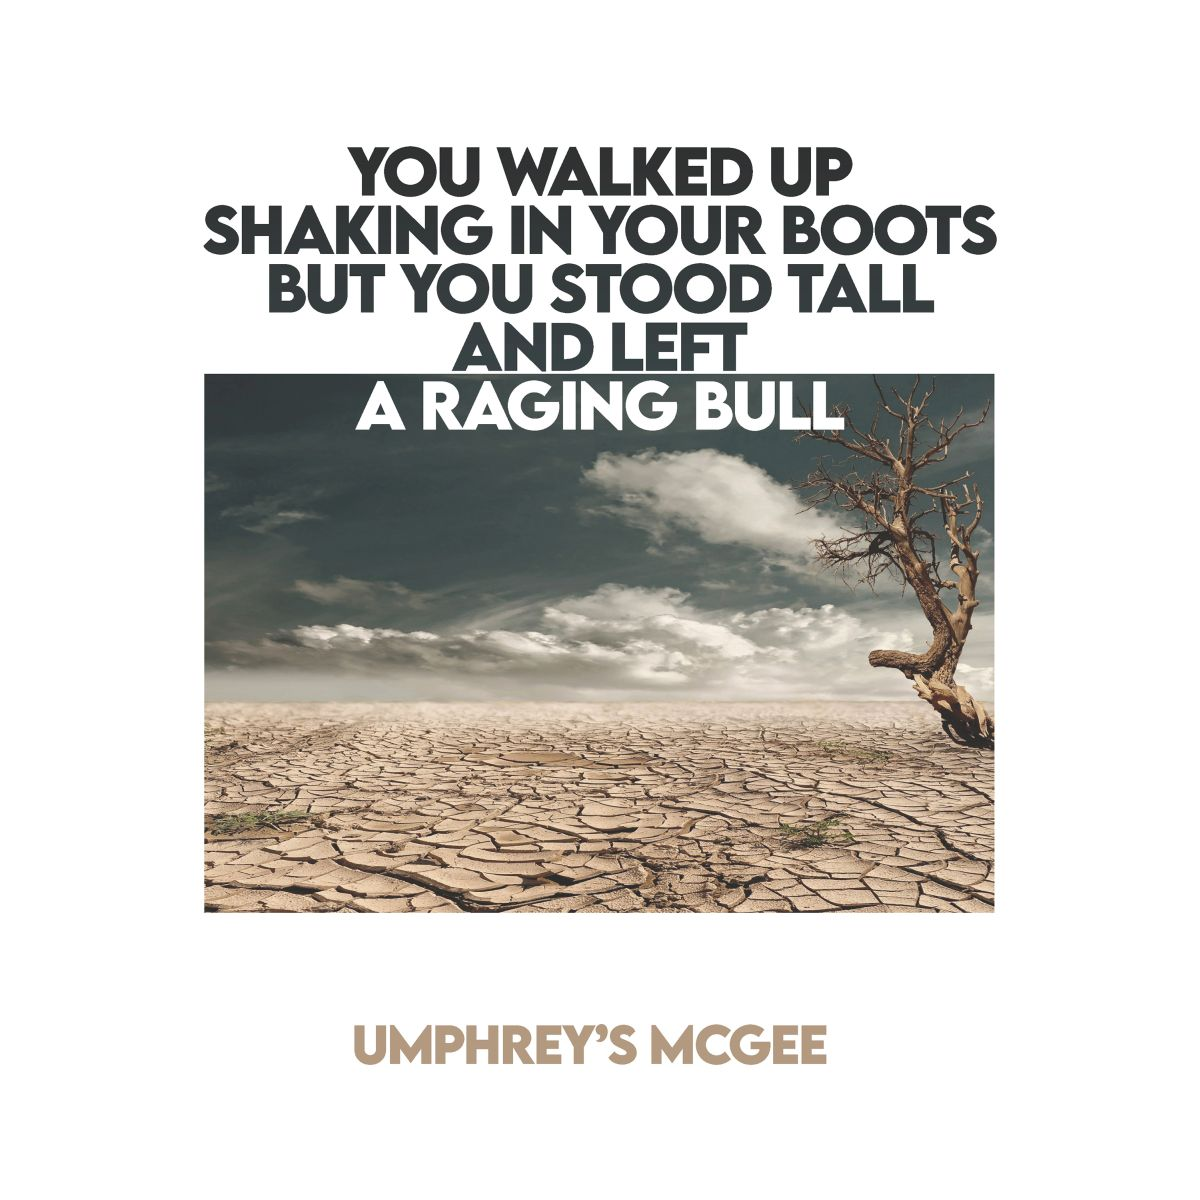 YOU WALKED UP SHAKING IN YOUR BOOTS BUT YOU STOOD TALL AND LEFT A RAGING BULL Digital Download